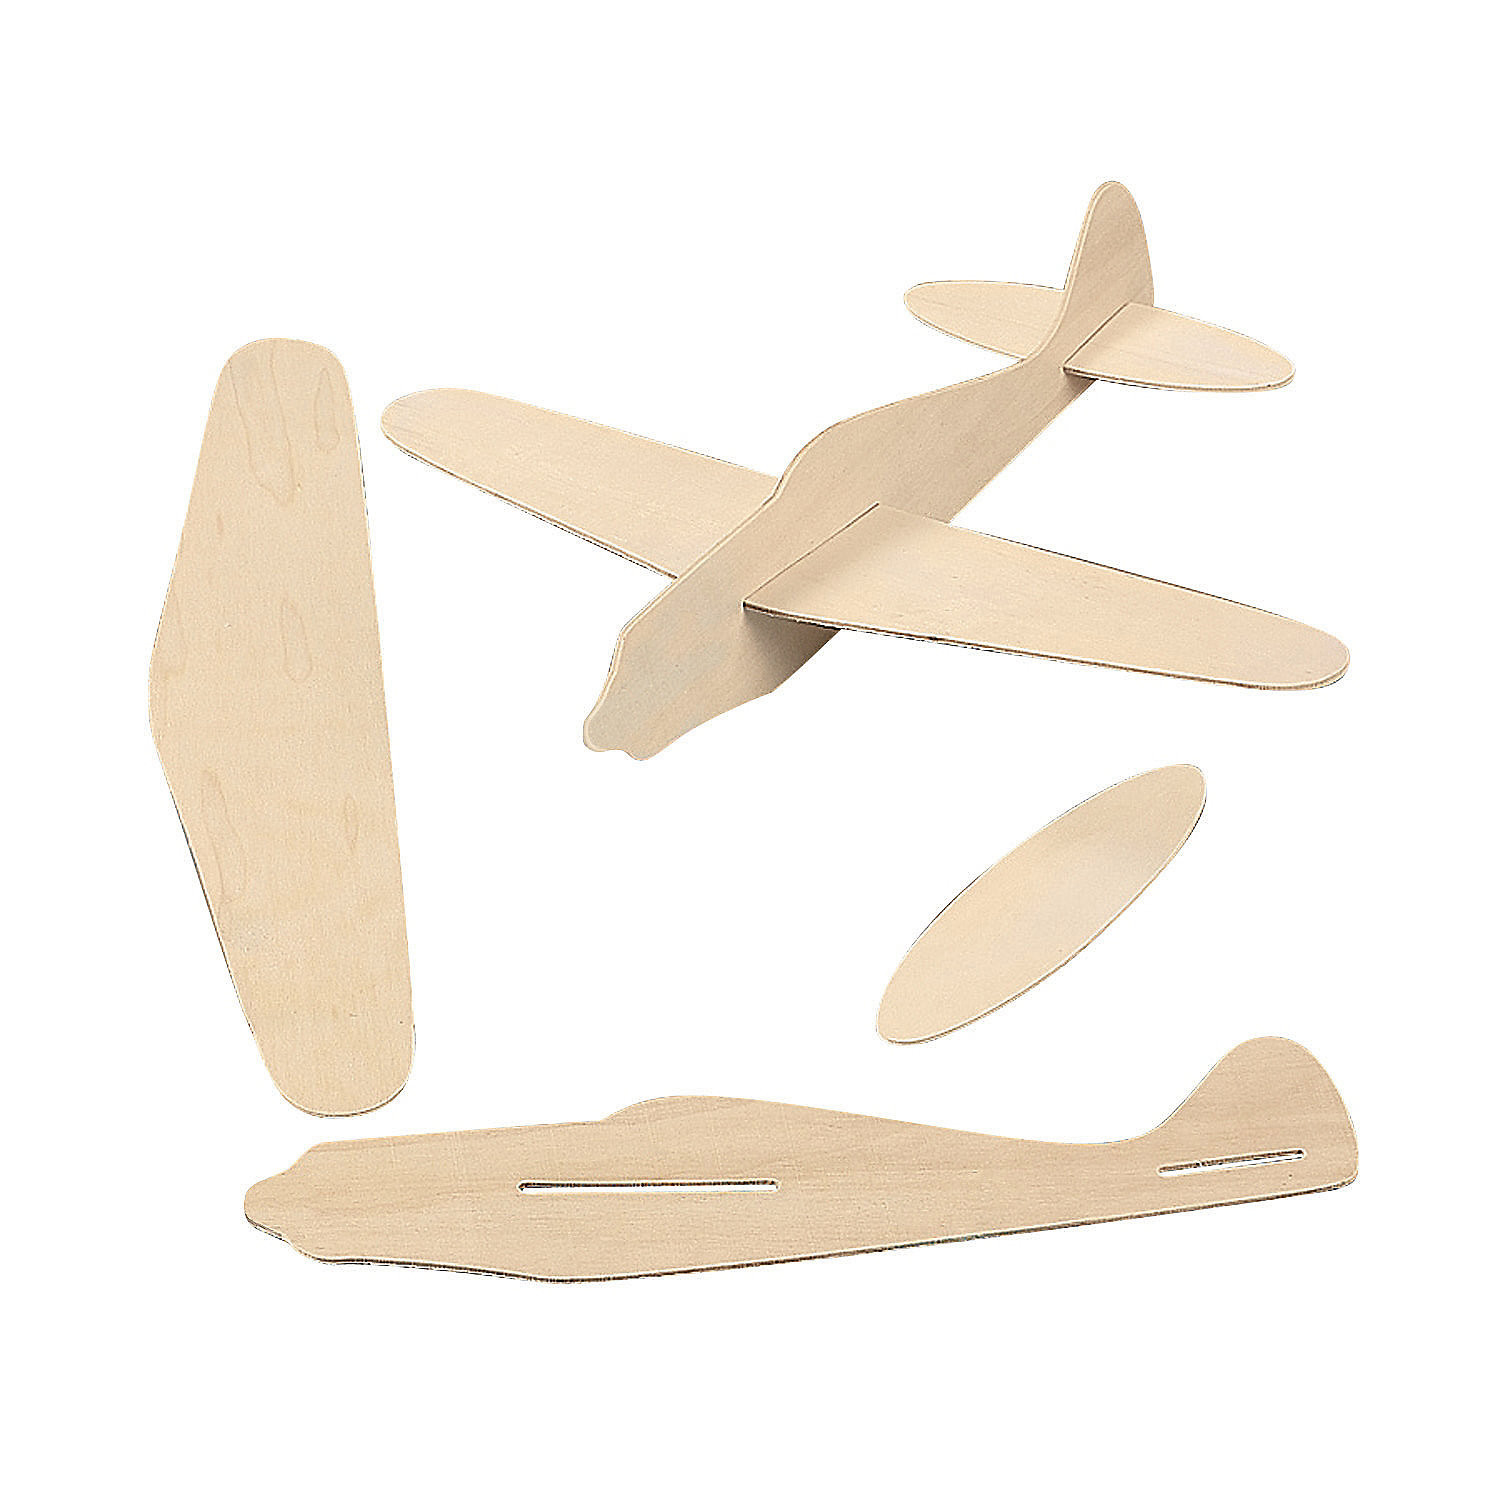 Best ideas about DIY Airplane Kits . Save or Pin DIY Wood Airplane Kits Oriental Trading Now.